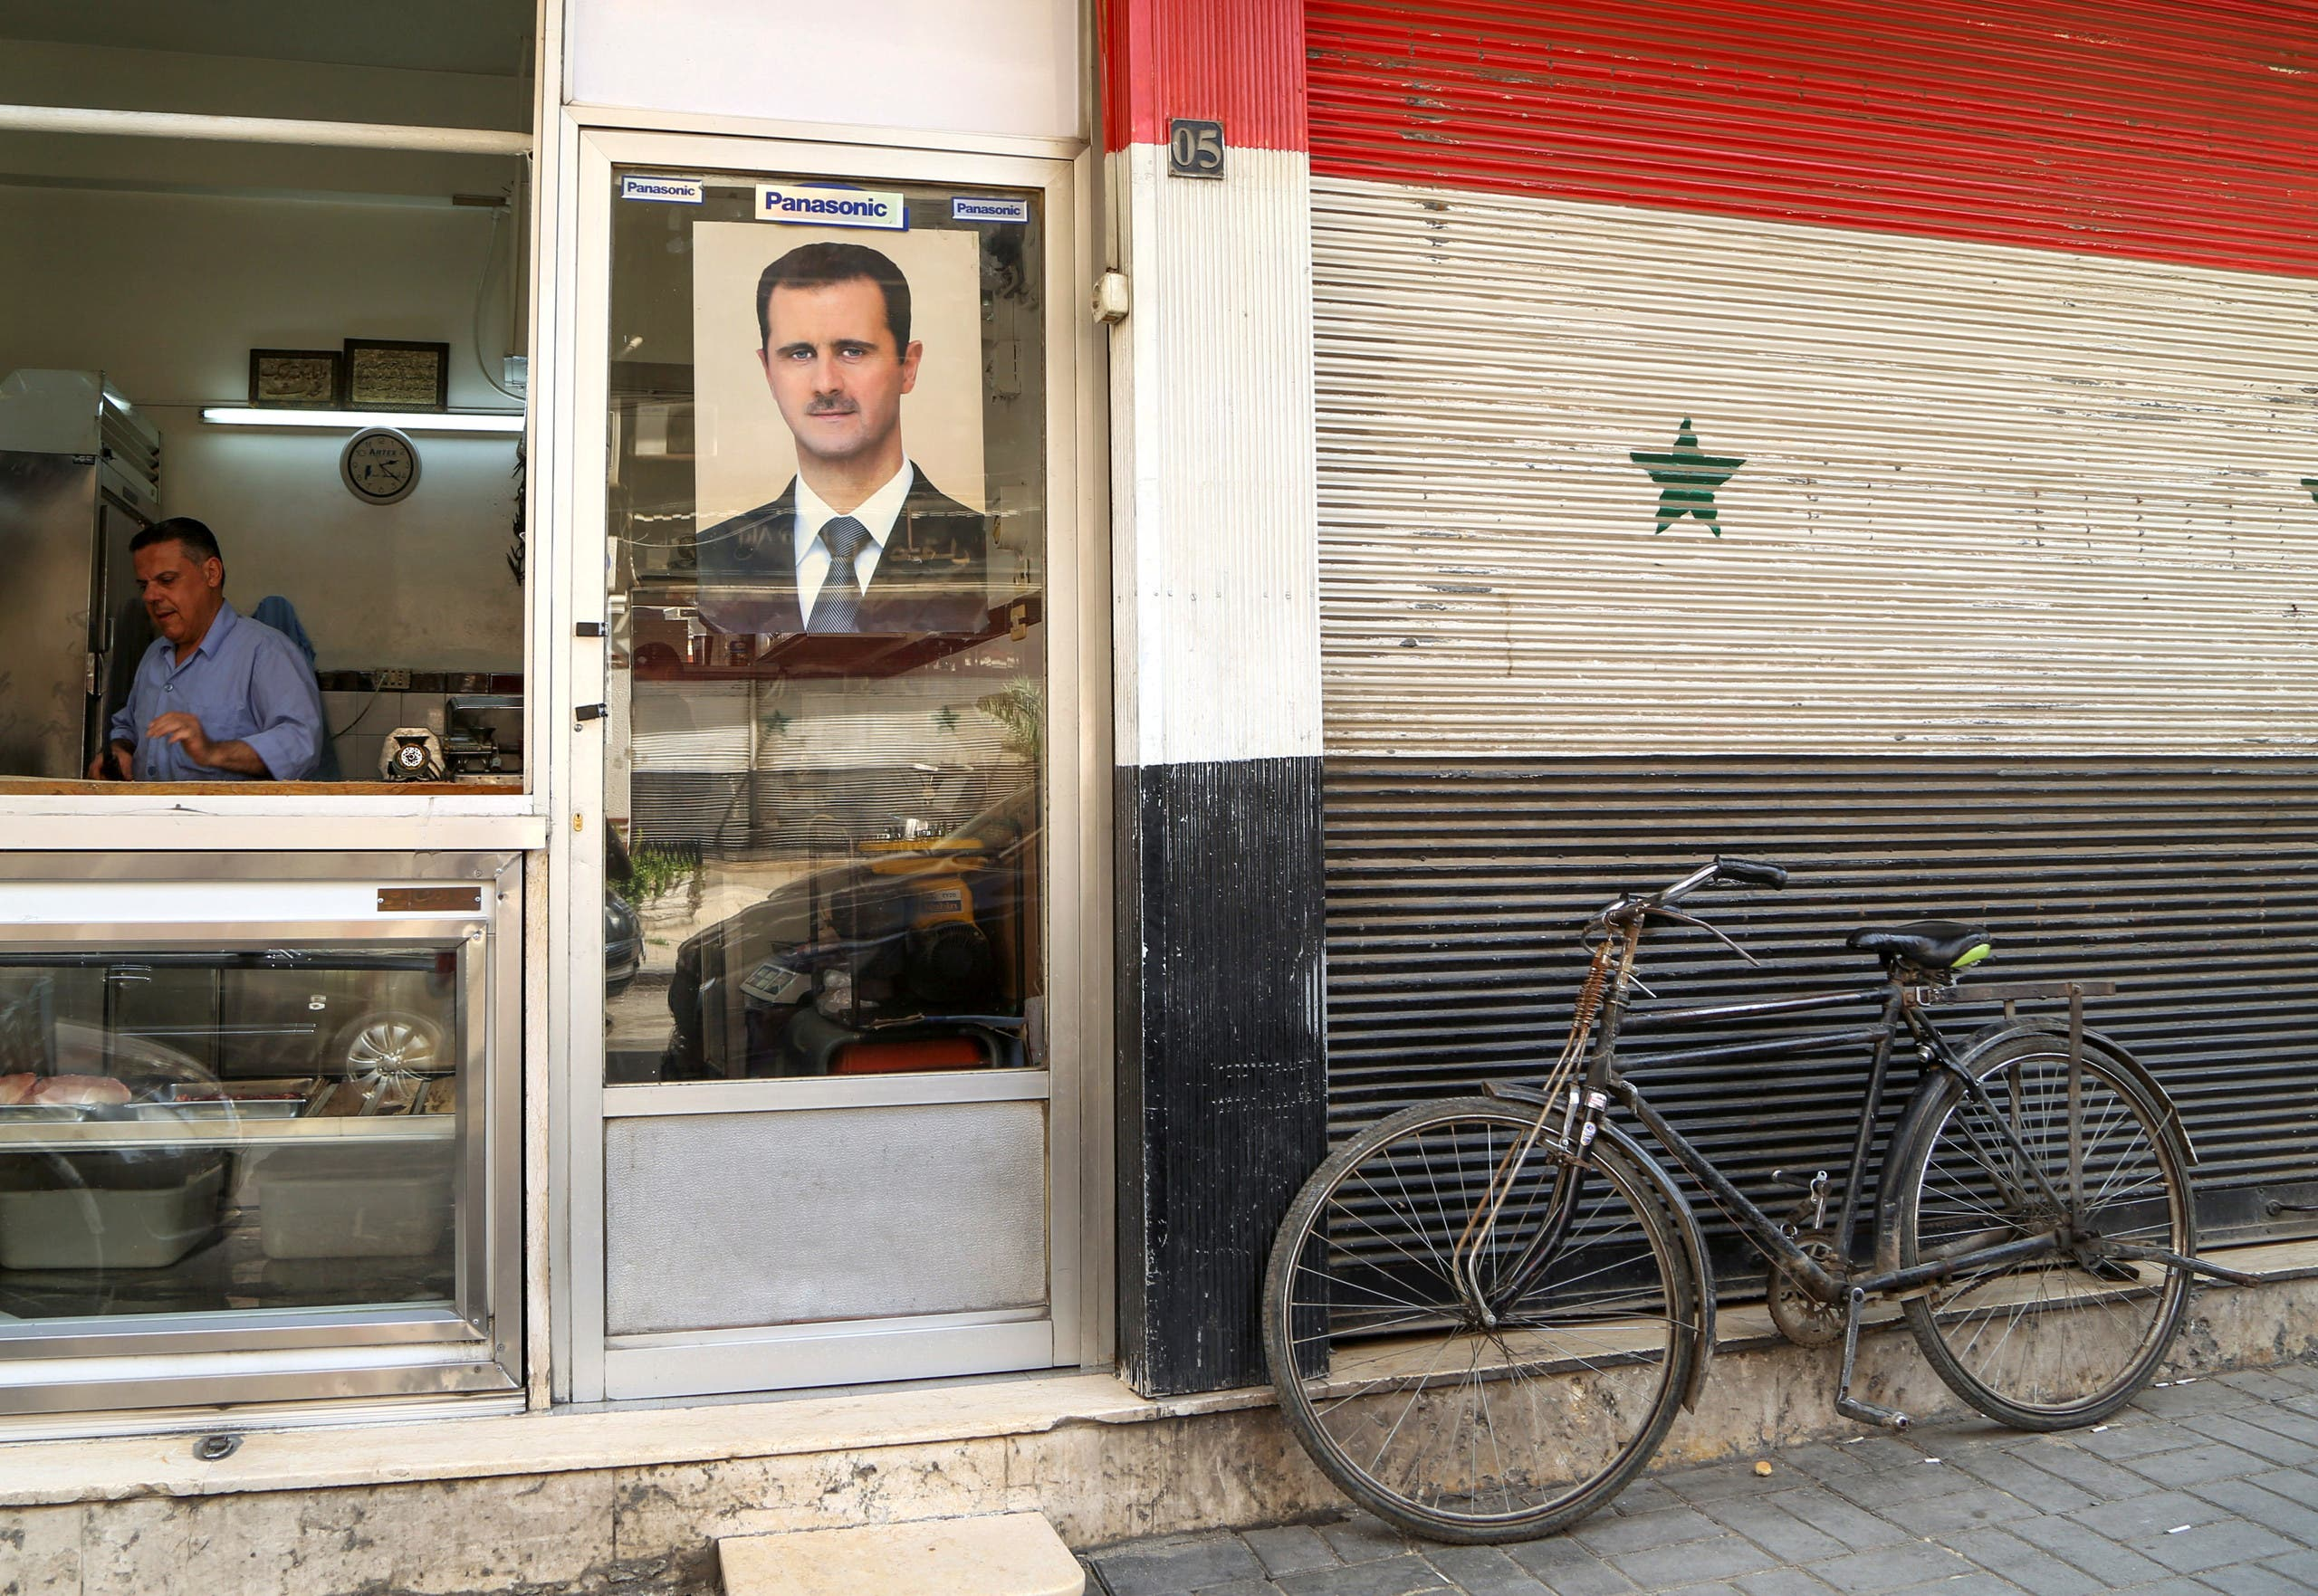 A picture of Syrian President Bashar al-Assad is seen on a door of a butcher shop, during a lockdown to prevent the spread of the coronavirus, in Damascus, Syria April 22, 2020. (Reuters)